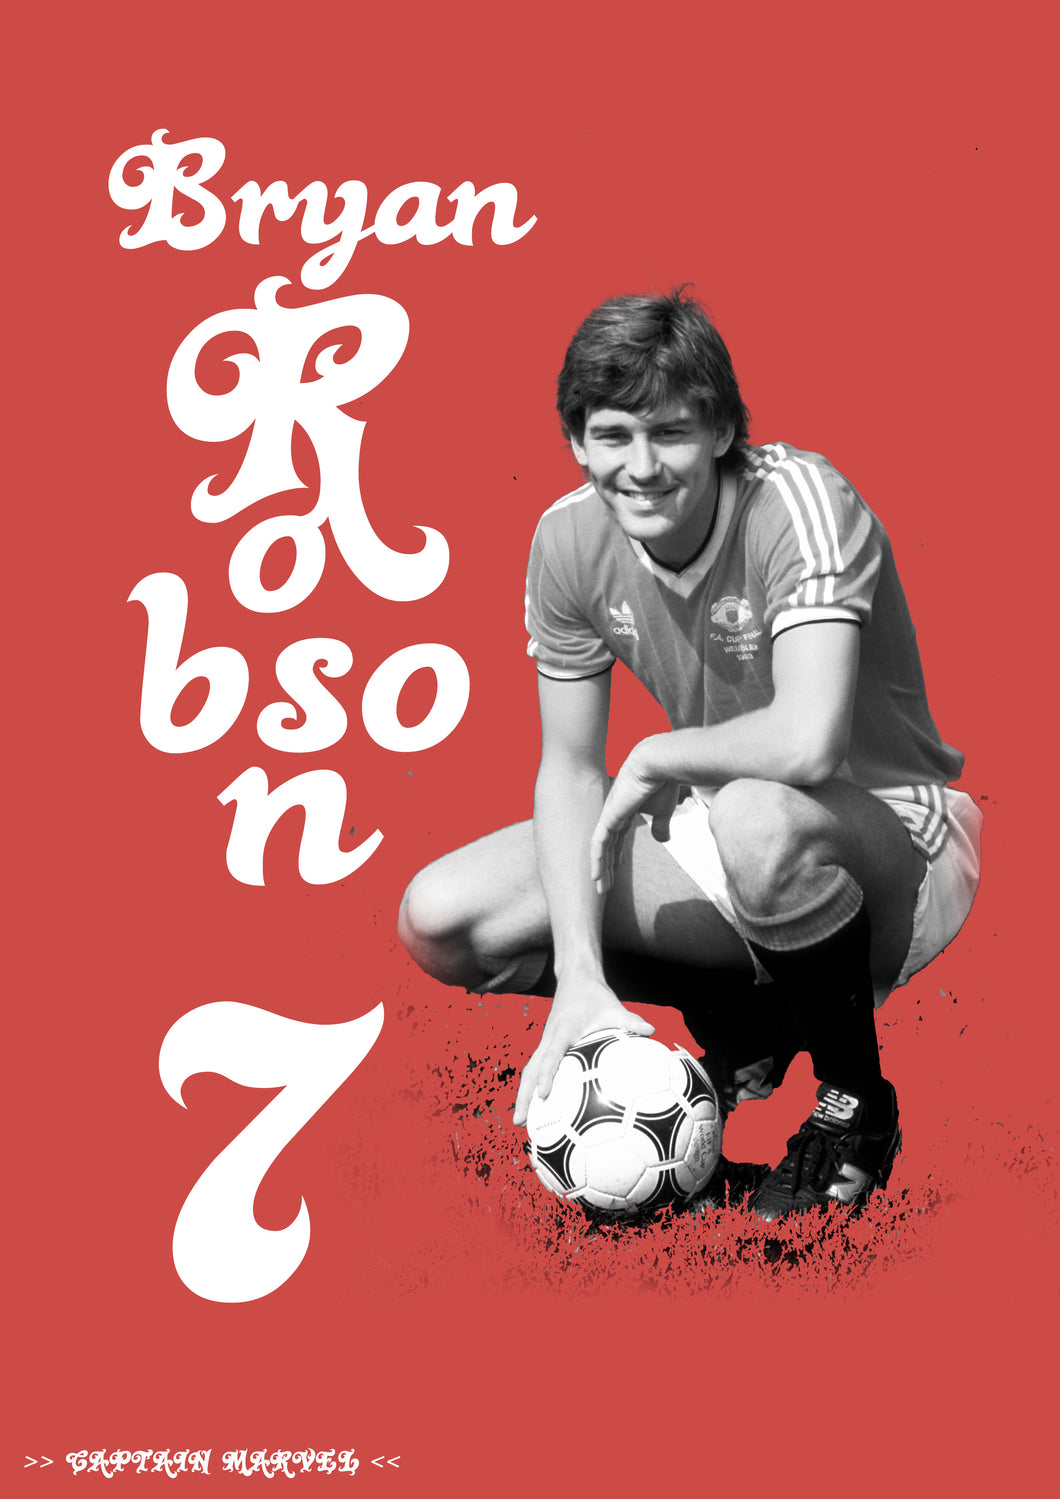 Bryan Robson Poster